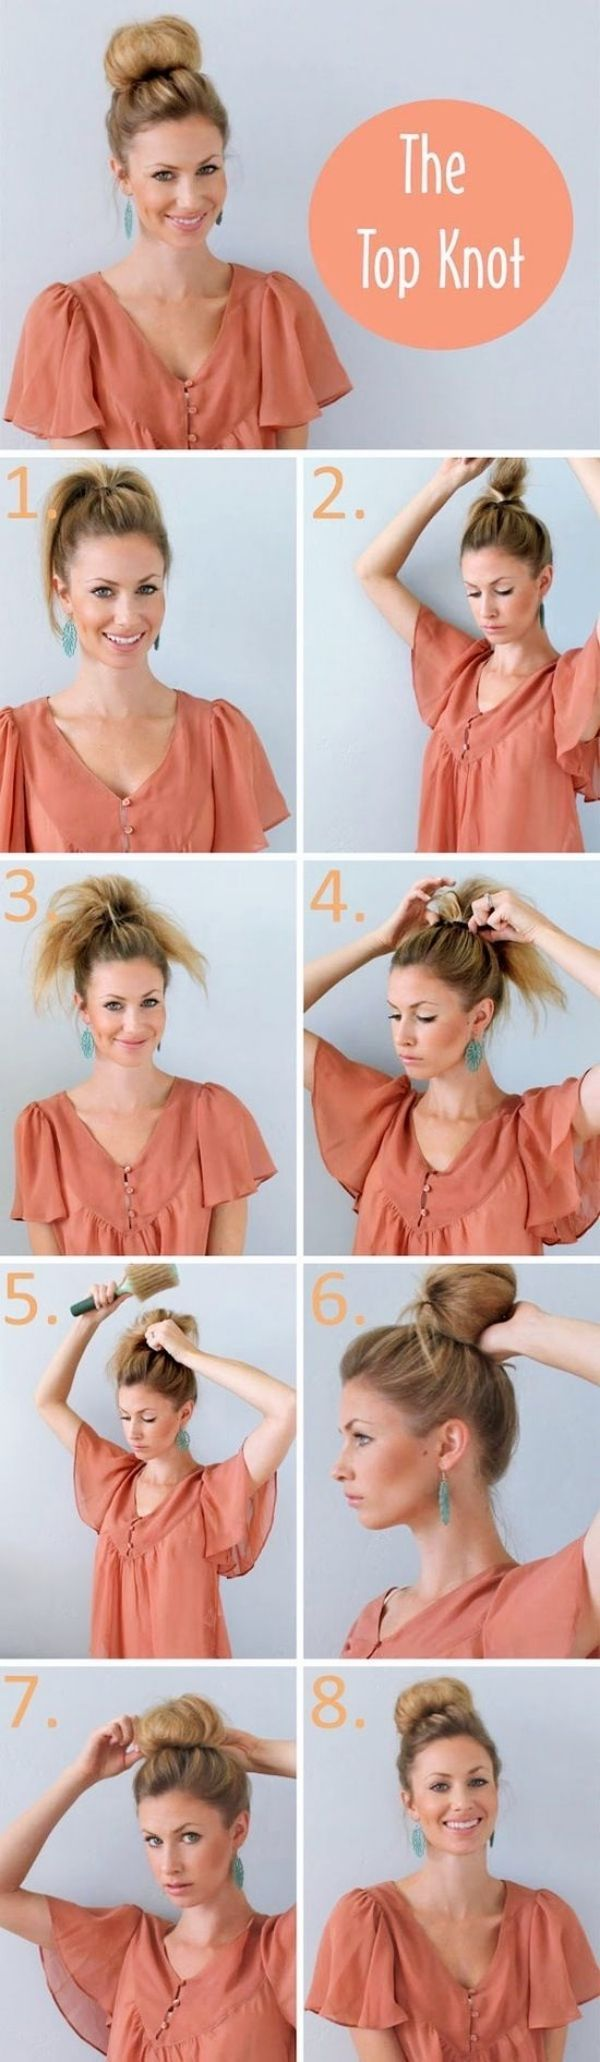 easy hairstyles no haircuts for women with short hair u how to